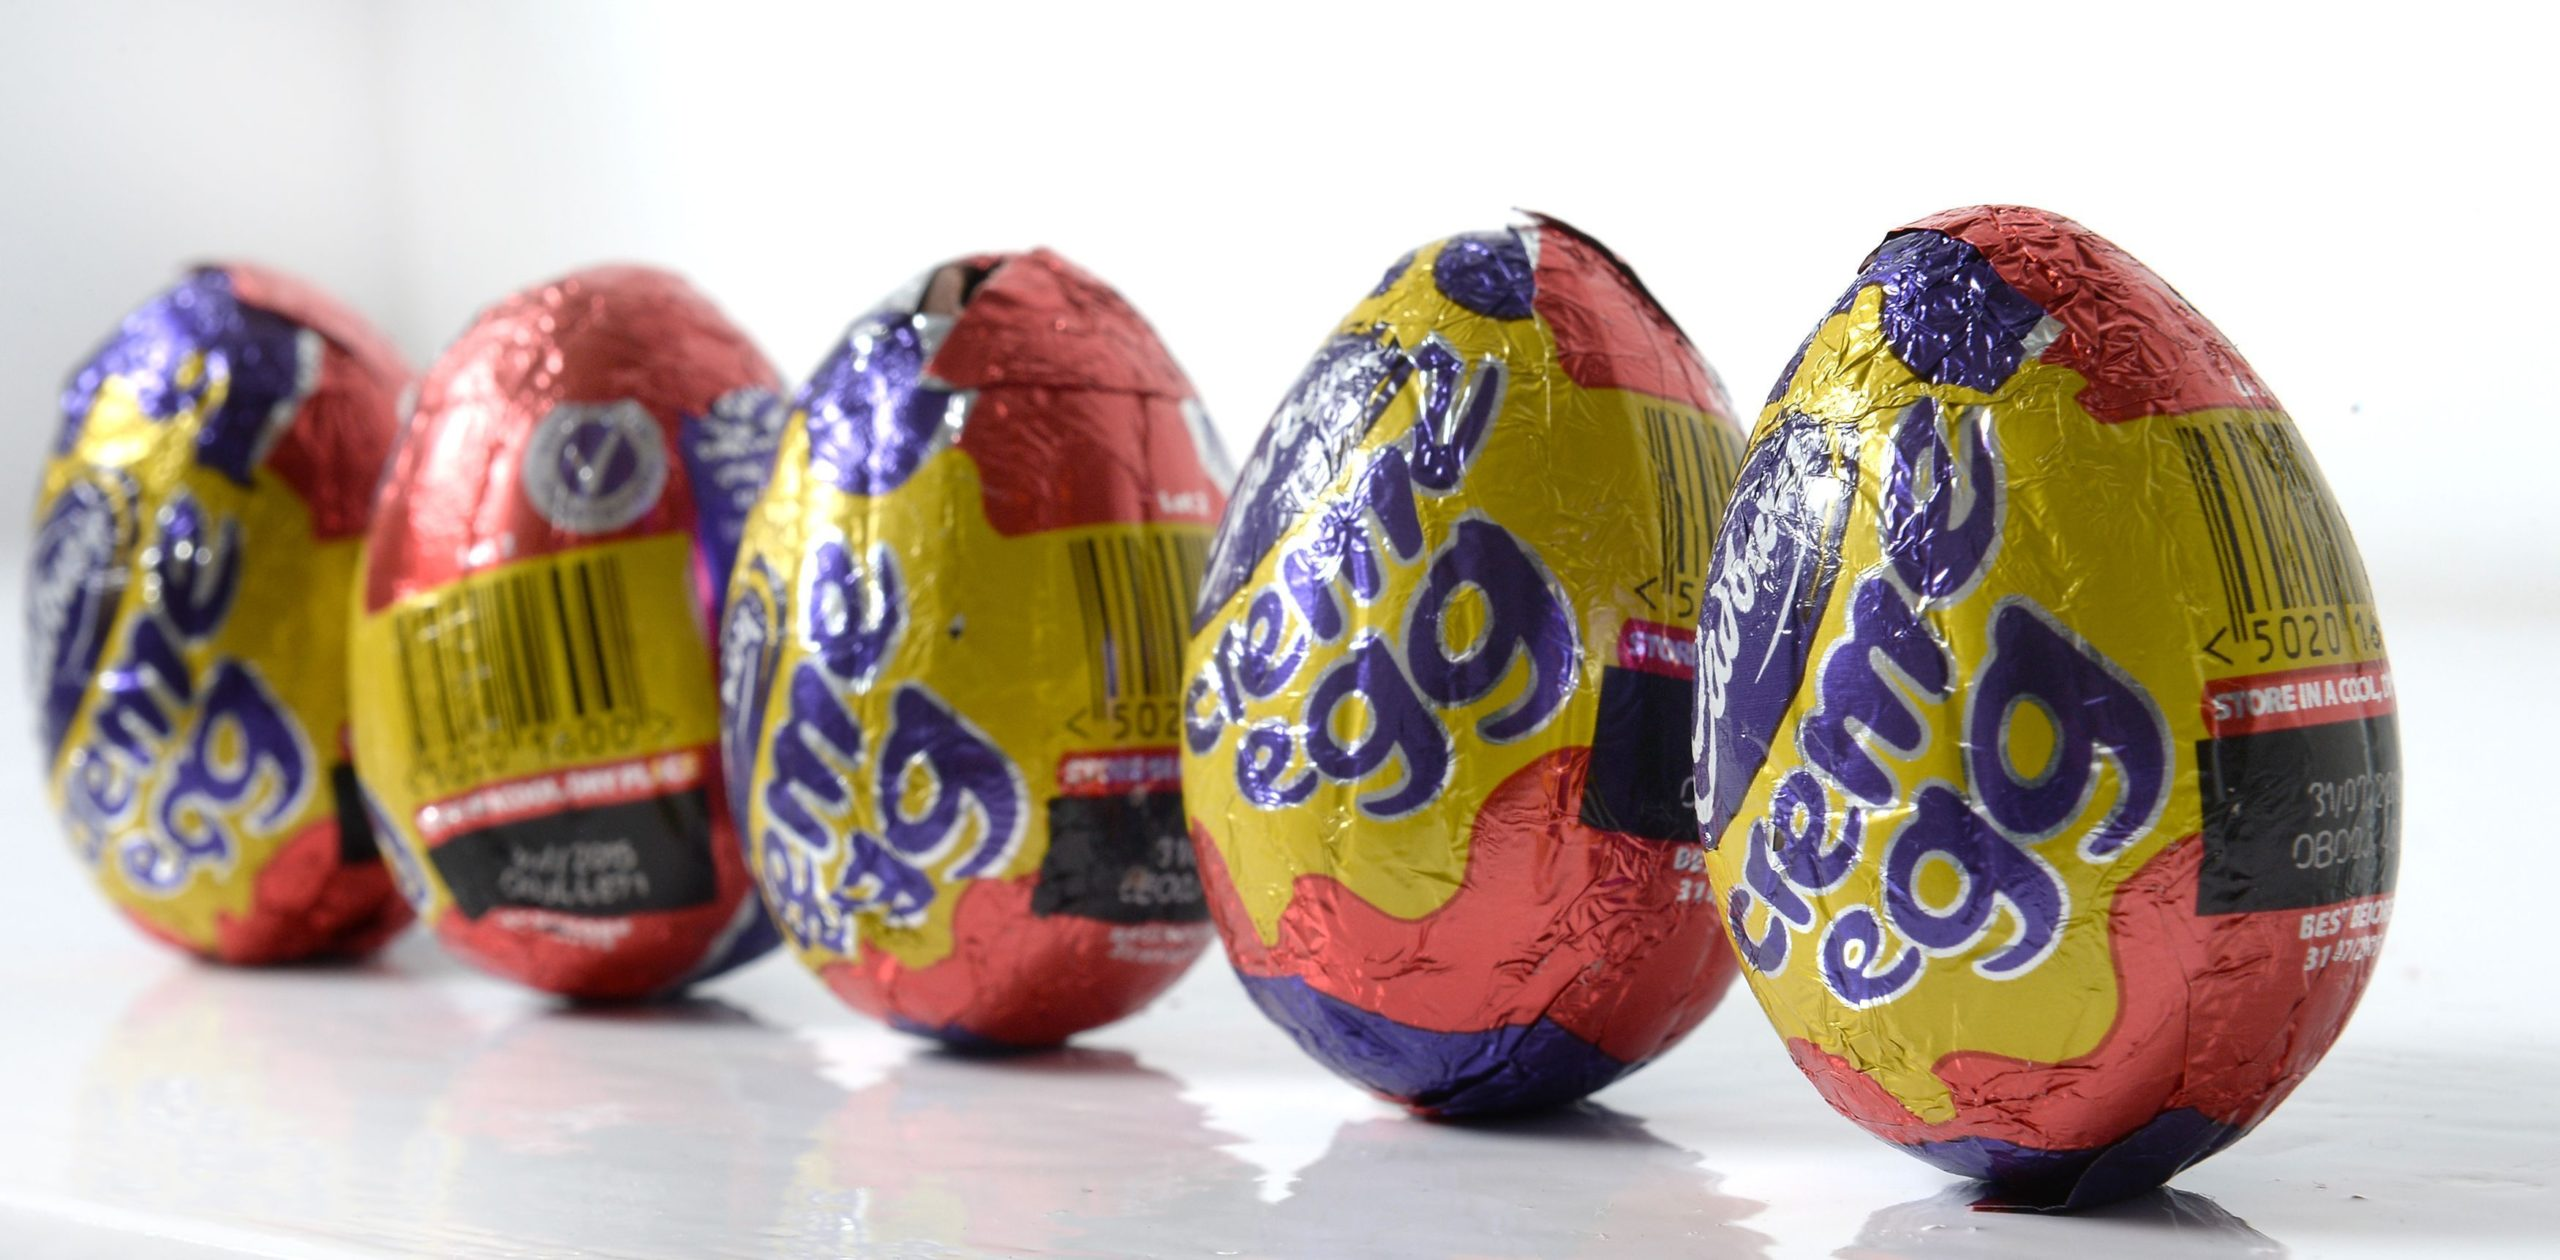 New Creme Egg advert